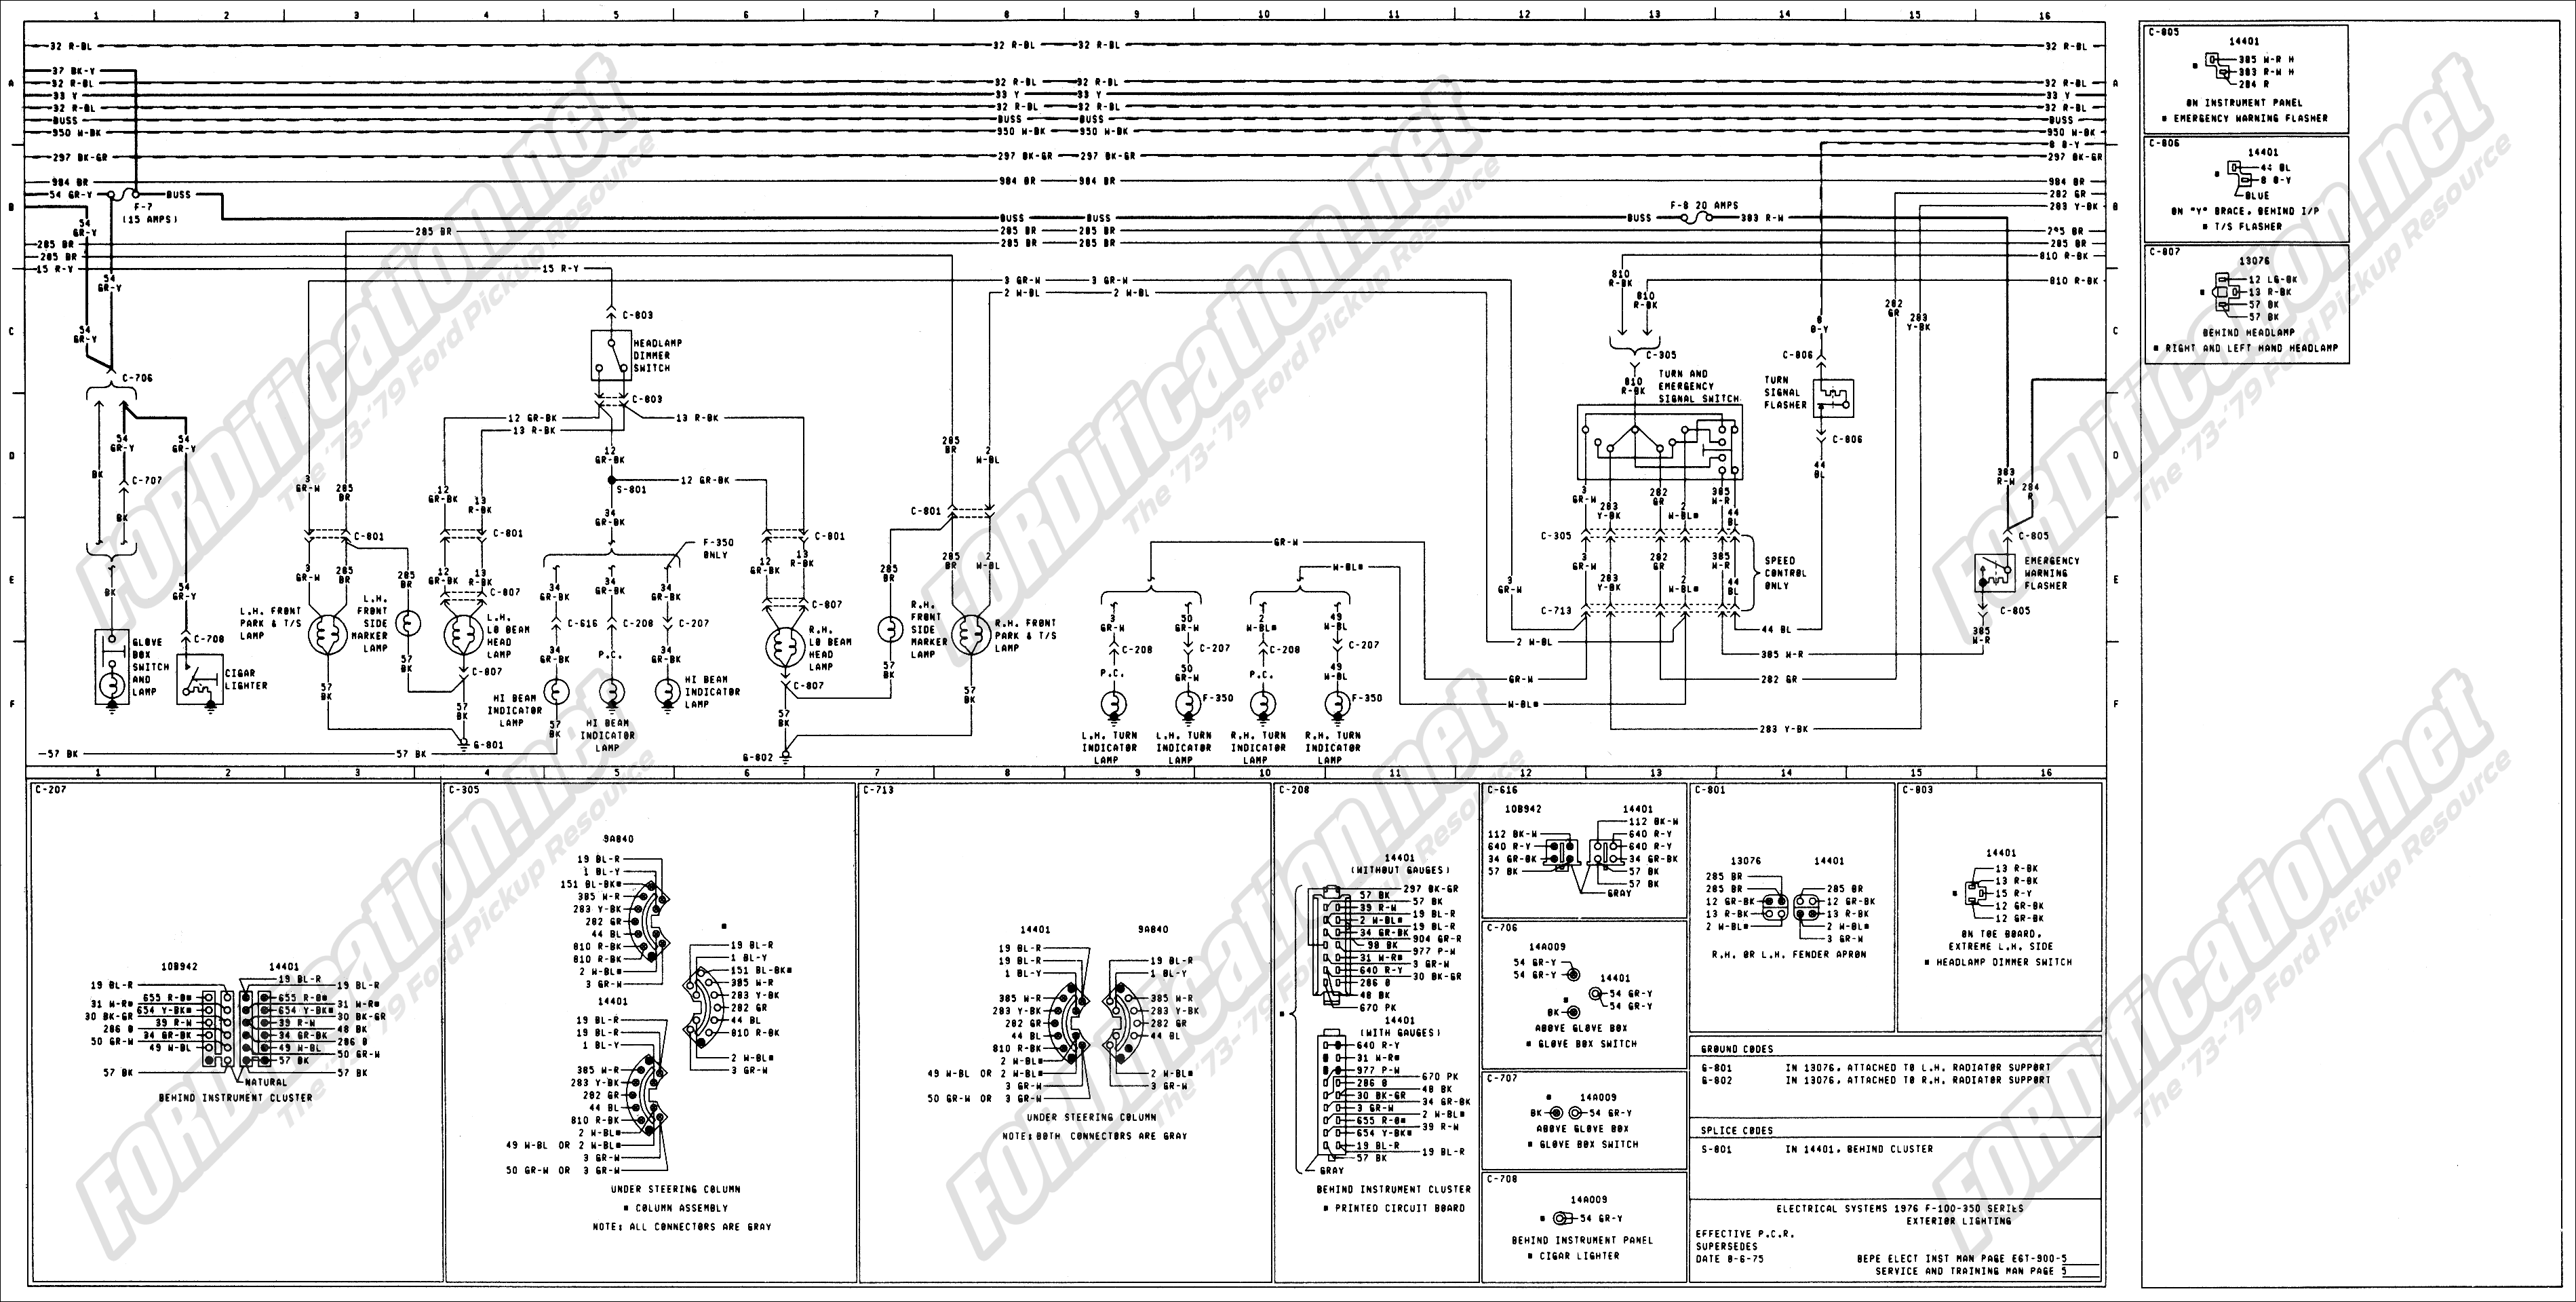 Ford Truck Ignition Wiring Diagram Data Automotive 1973 1979 Diagrams Schematics Fordification Net Electrical